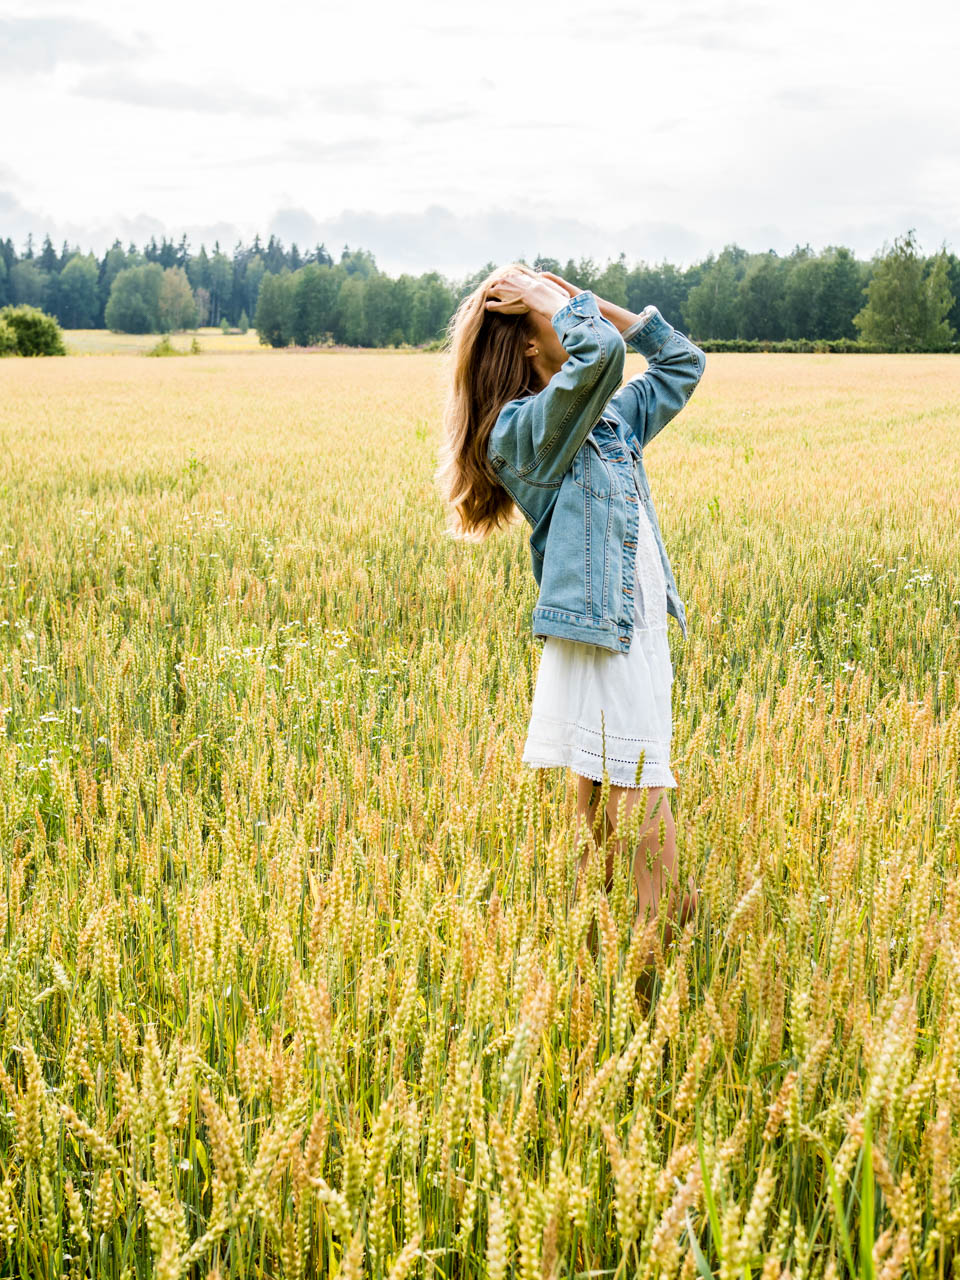 fashion-photography-girl-on-a-field-summer-dress-denim-jacket